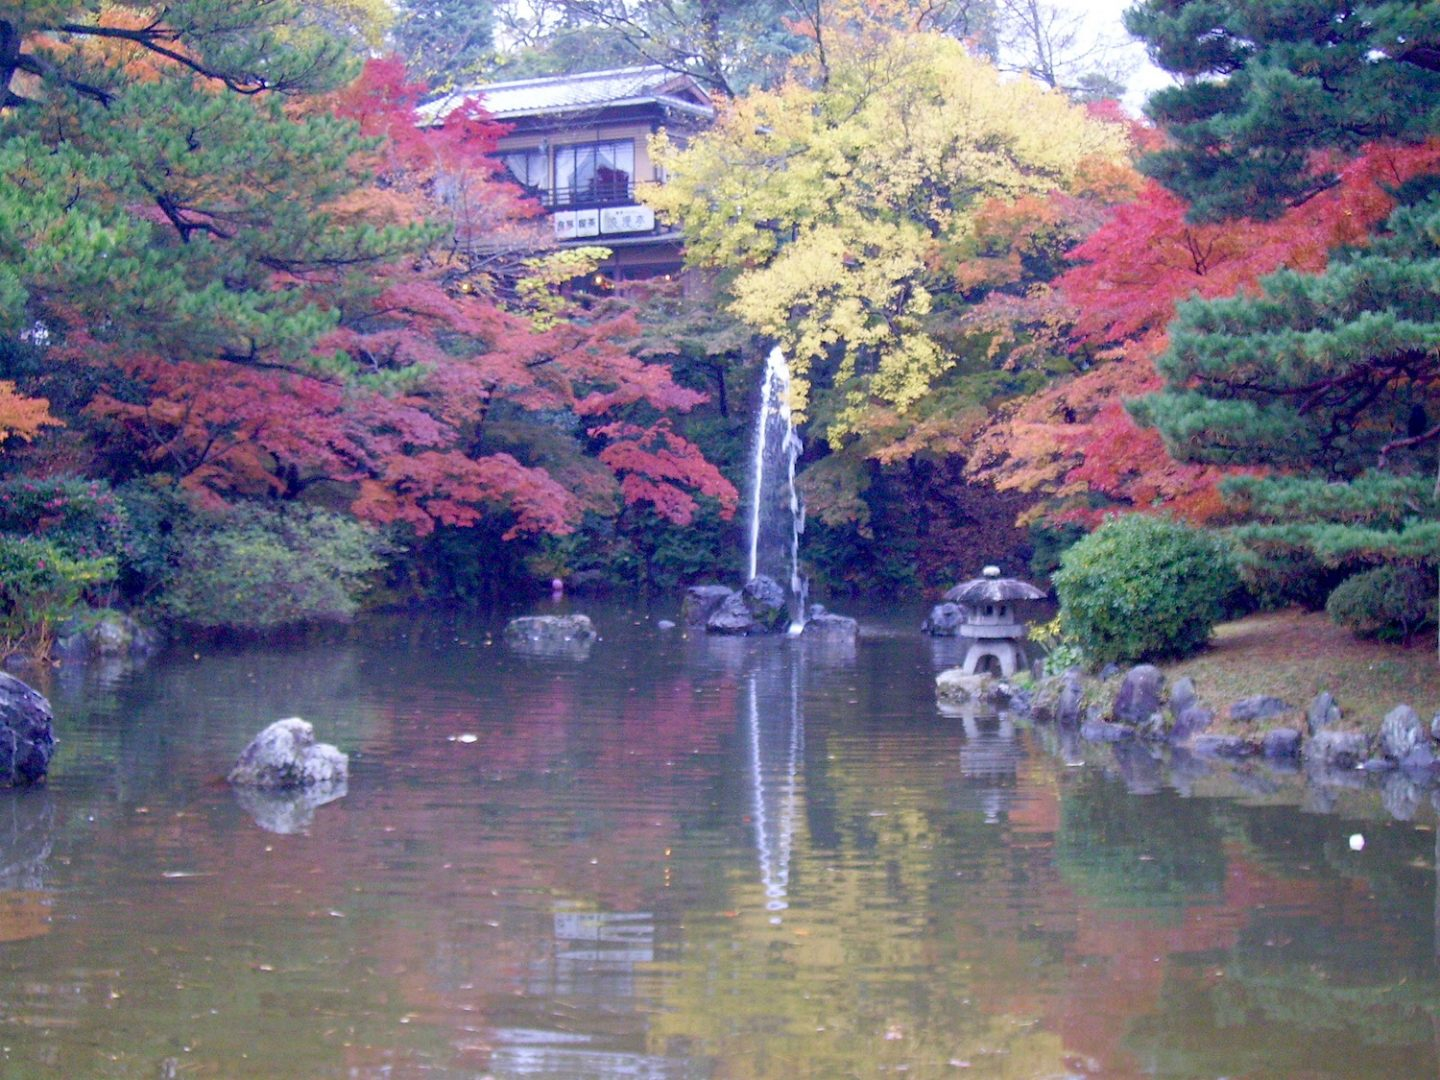 Autumn in Japan: First impressions